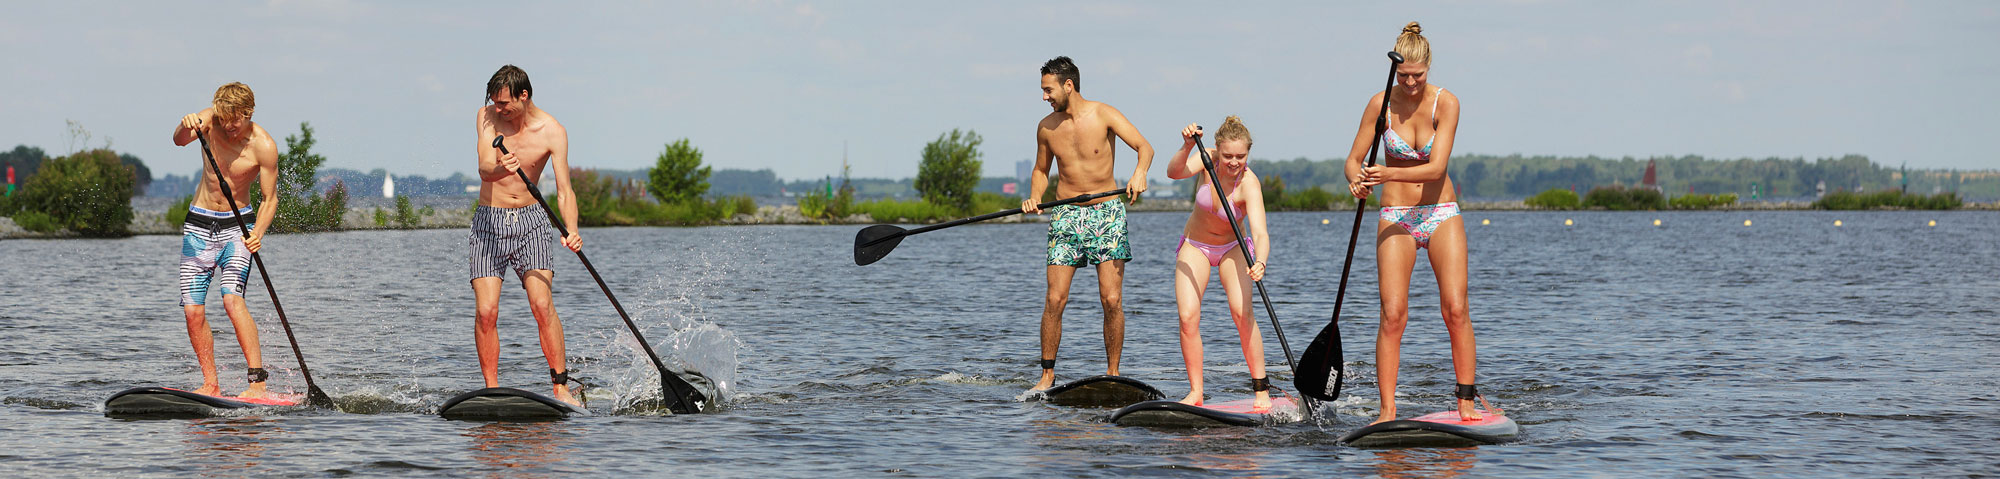 SUPPEN | Eemhof Watersport & Beachclub